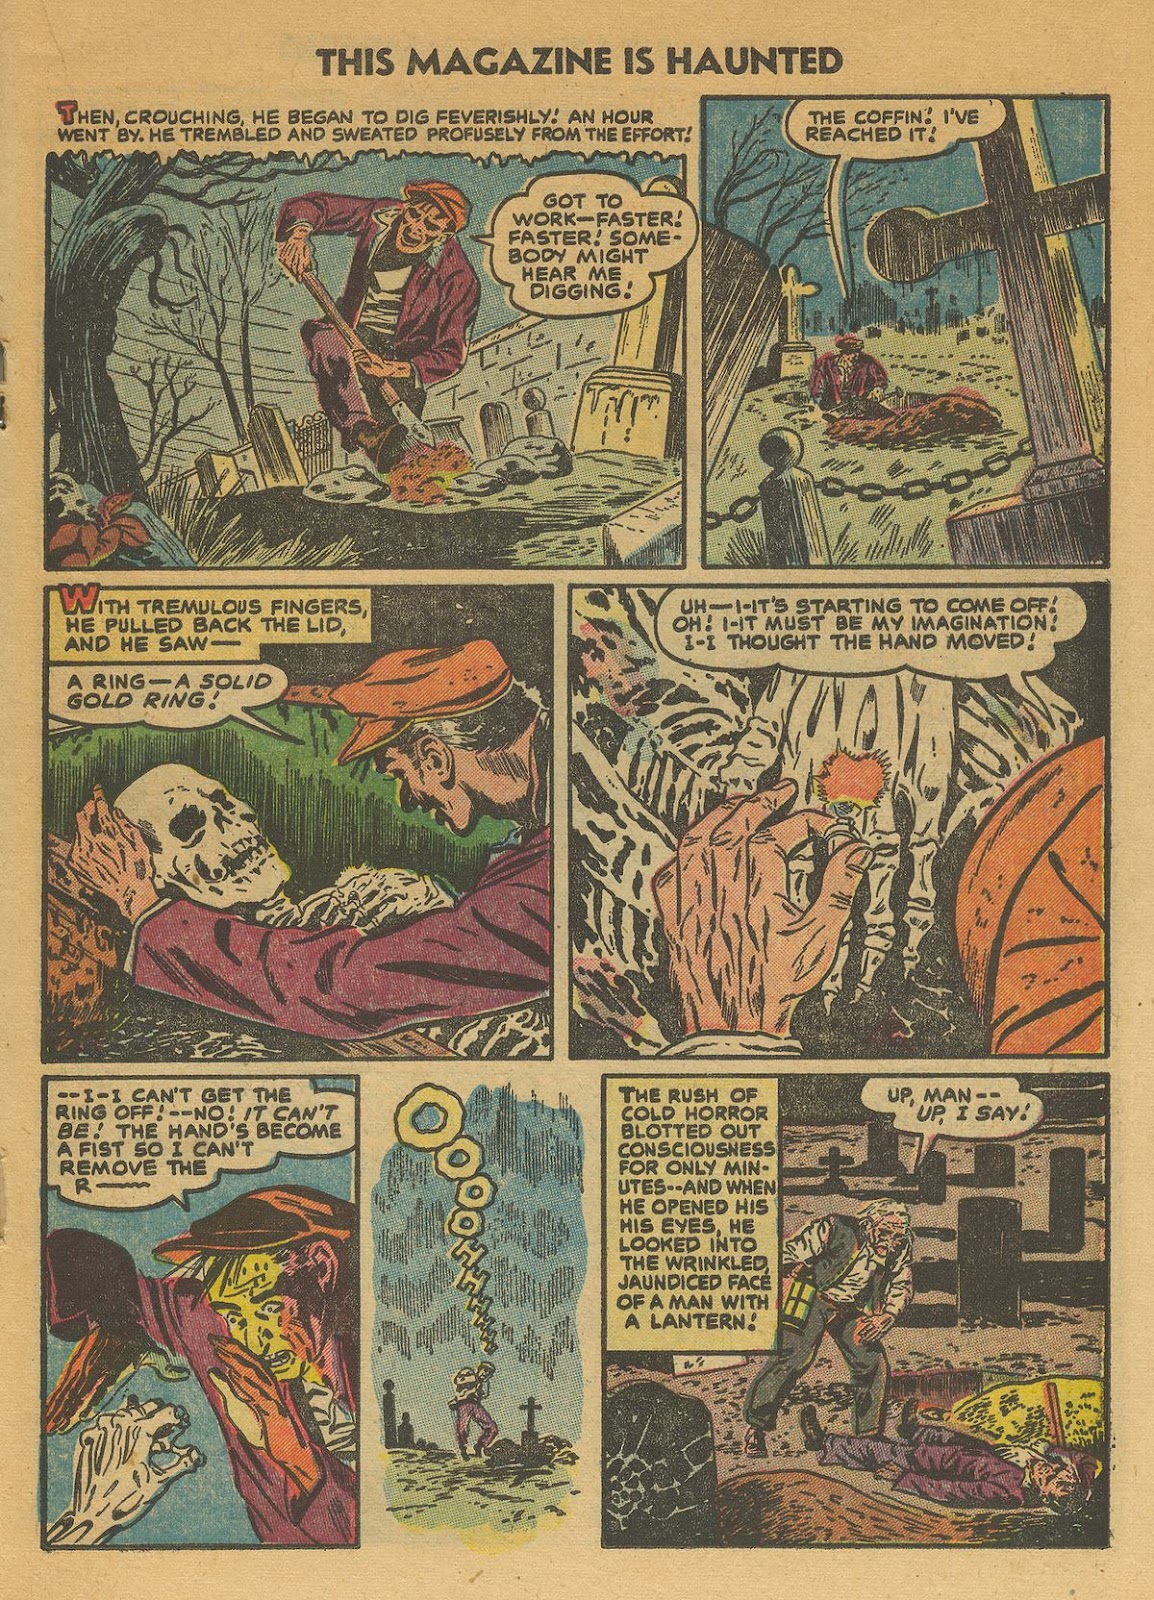 Read online This Magazine Is Haunted comic -  Issue #18 - 19